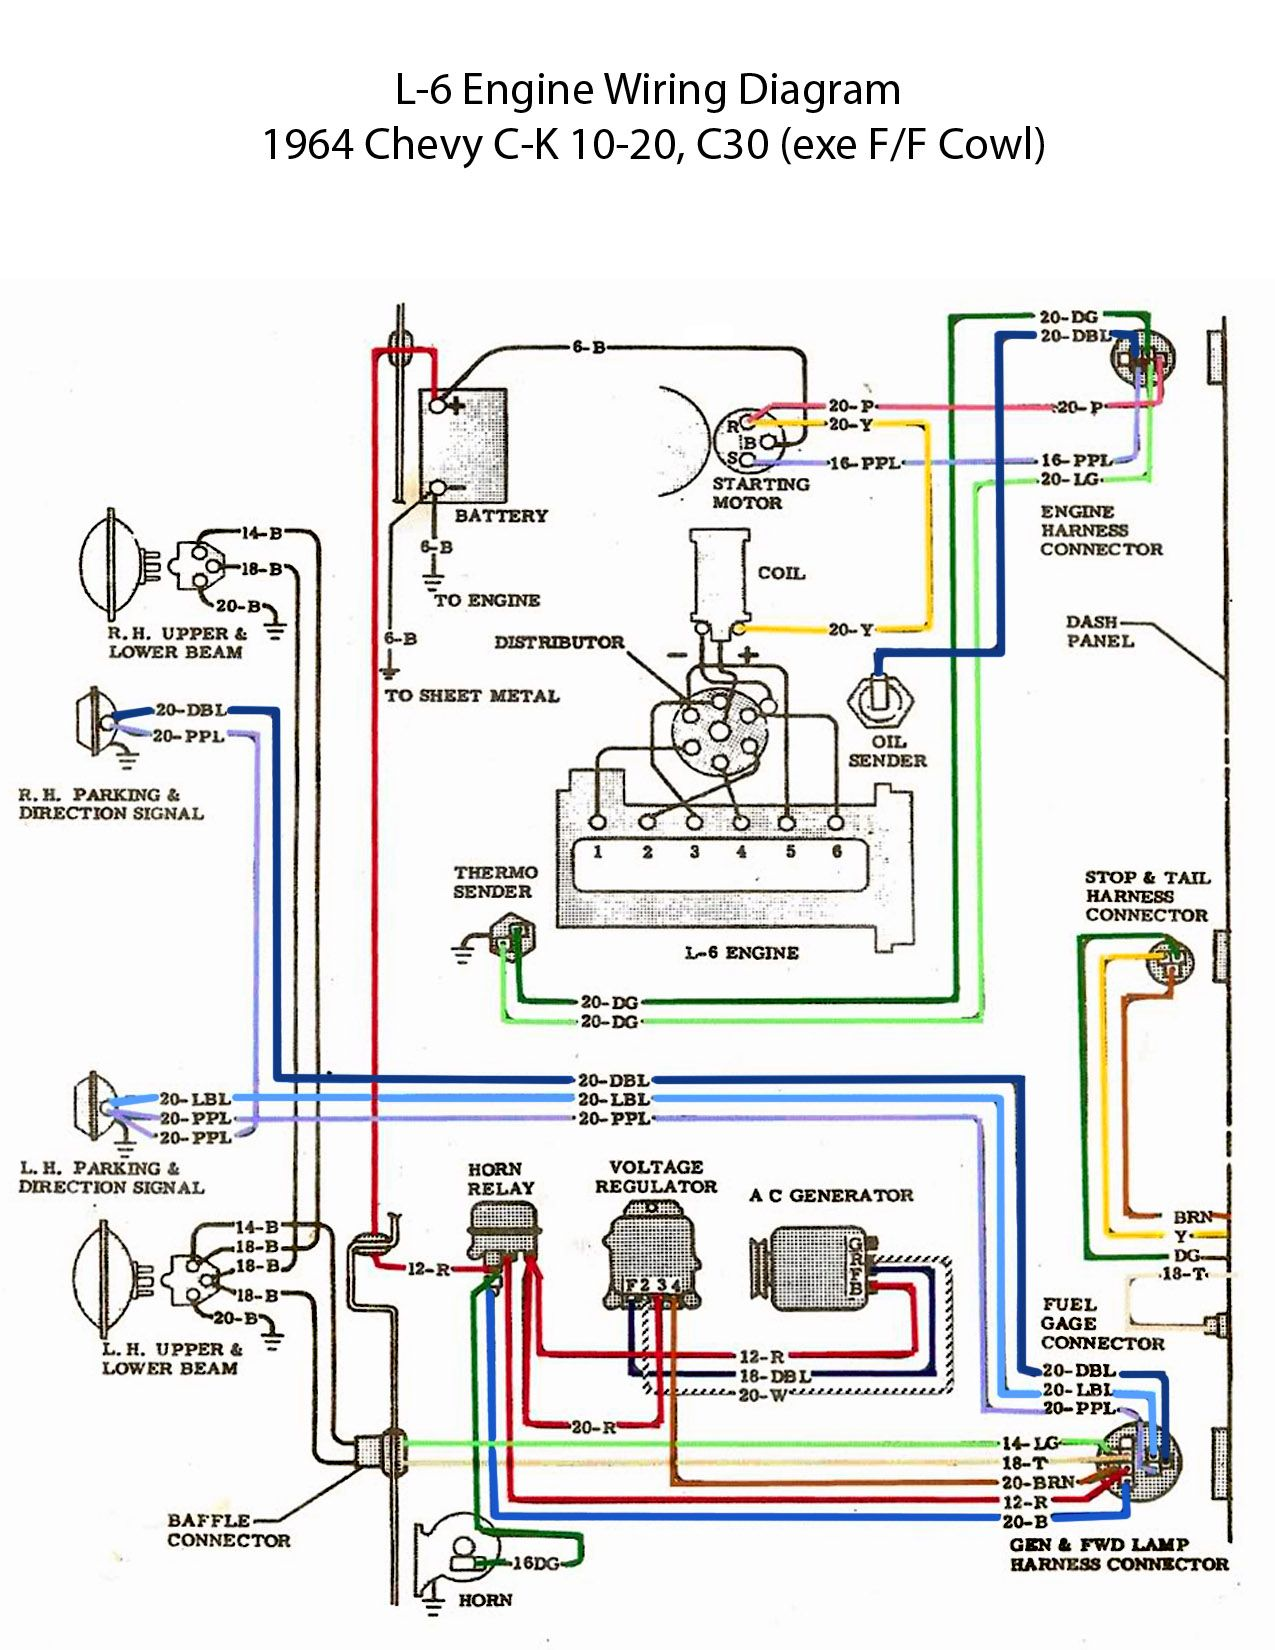 52f445b9f6cba1e2ba90979cb5234ed8 electric l 6 engine wiring diagram '60s chevy c10 wiring HEI Distributor Wiring Diagram at cita.asia